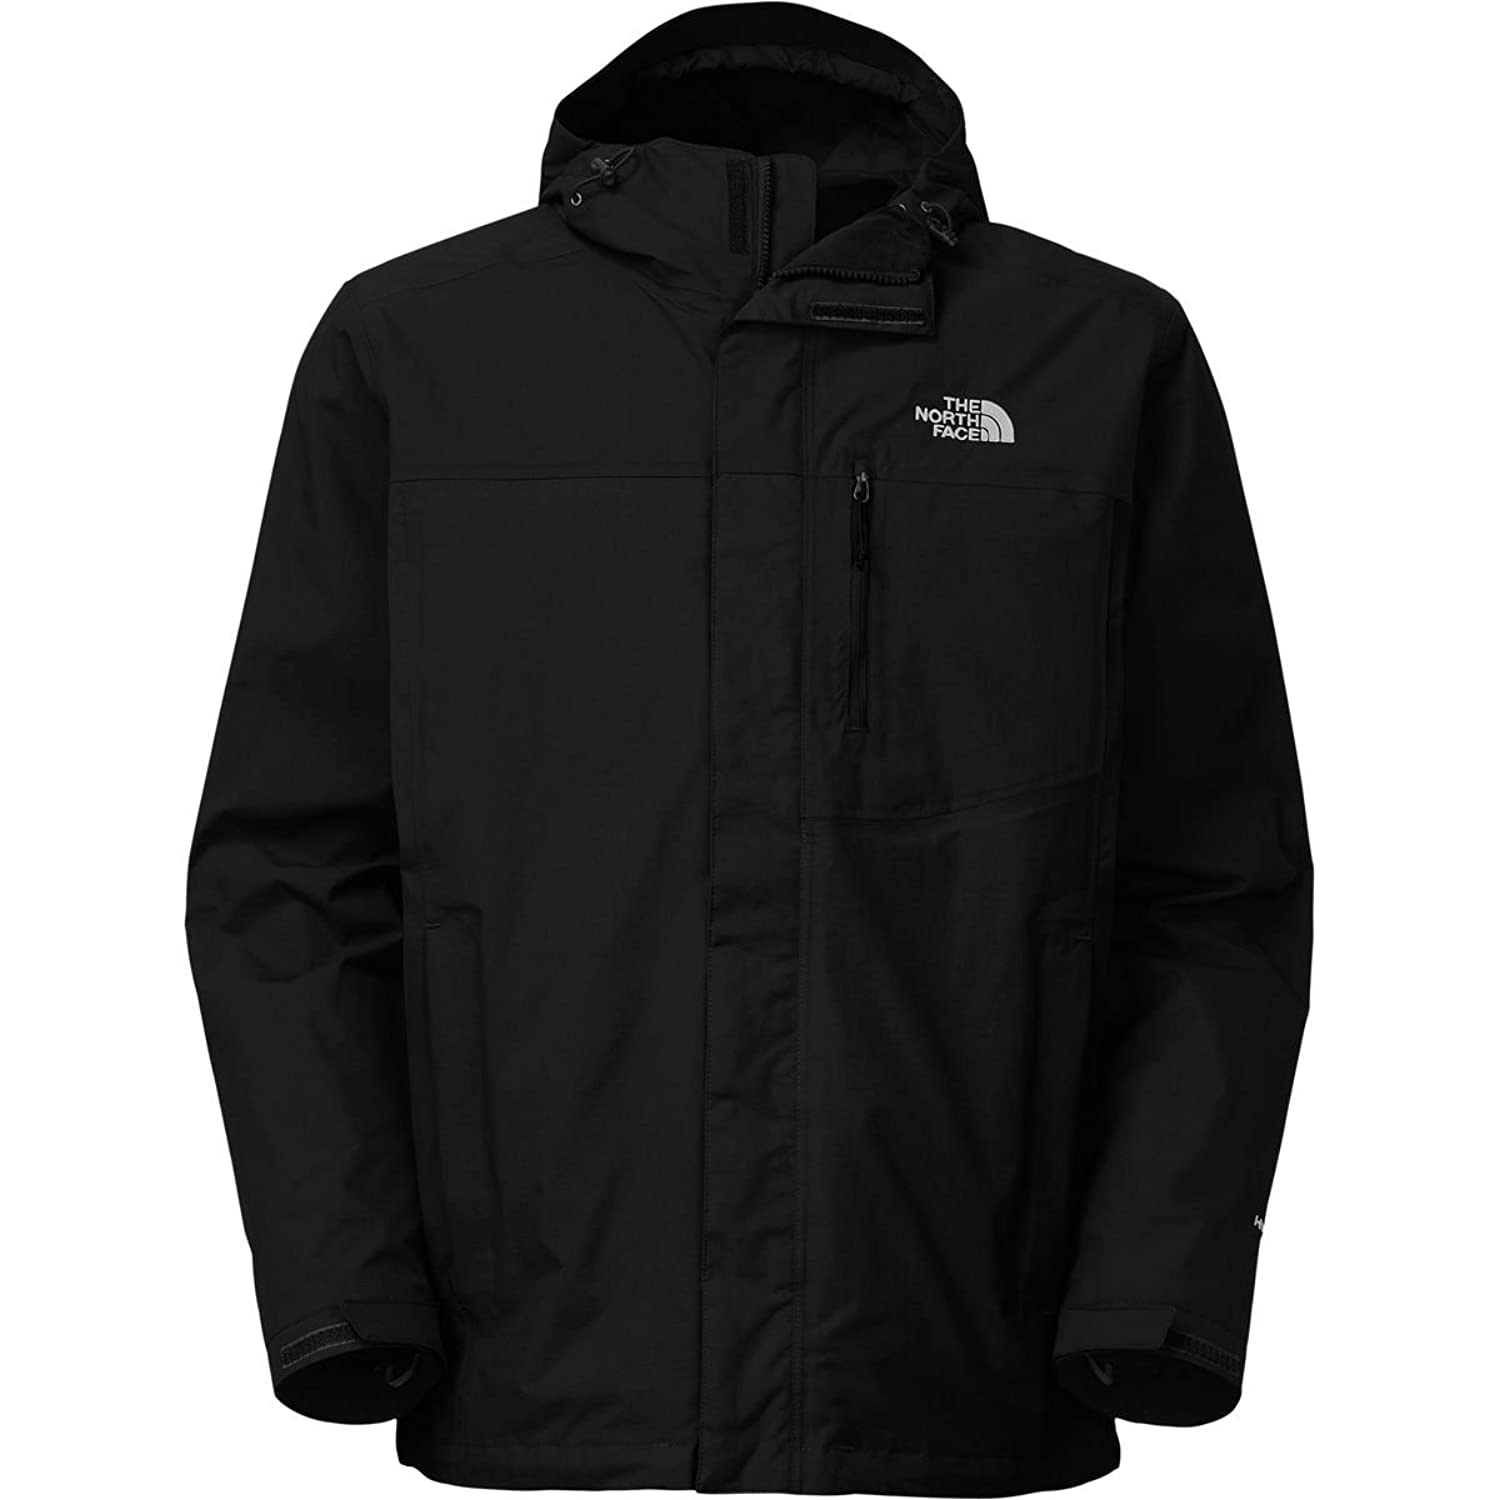 Amazon.com: The North Face Mens Atlas Triclimate Jacket: Sports & Outdoors